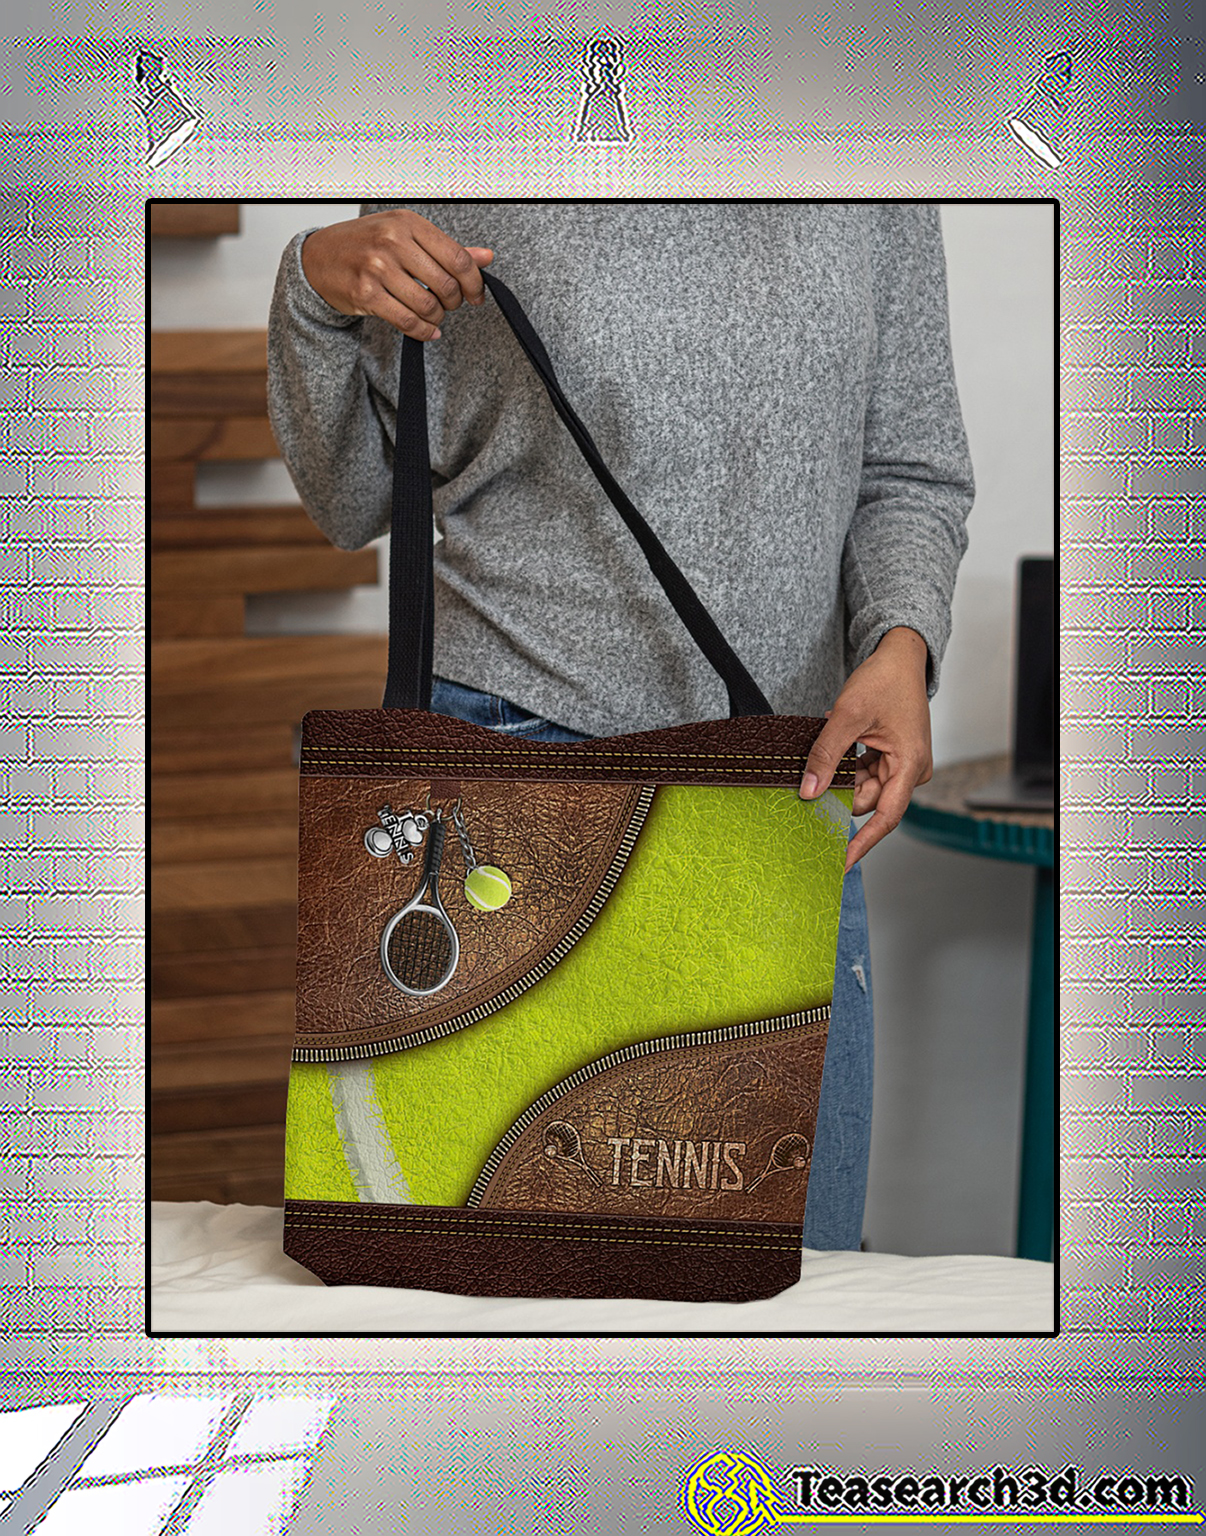 Tennis leather pattern print all-over tote bag 2